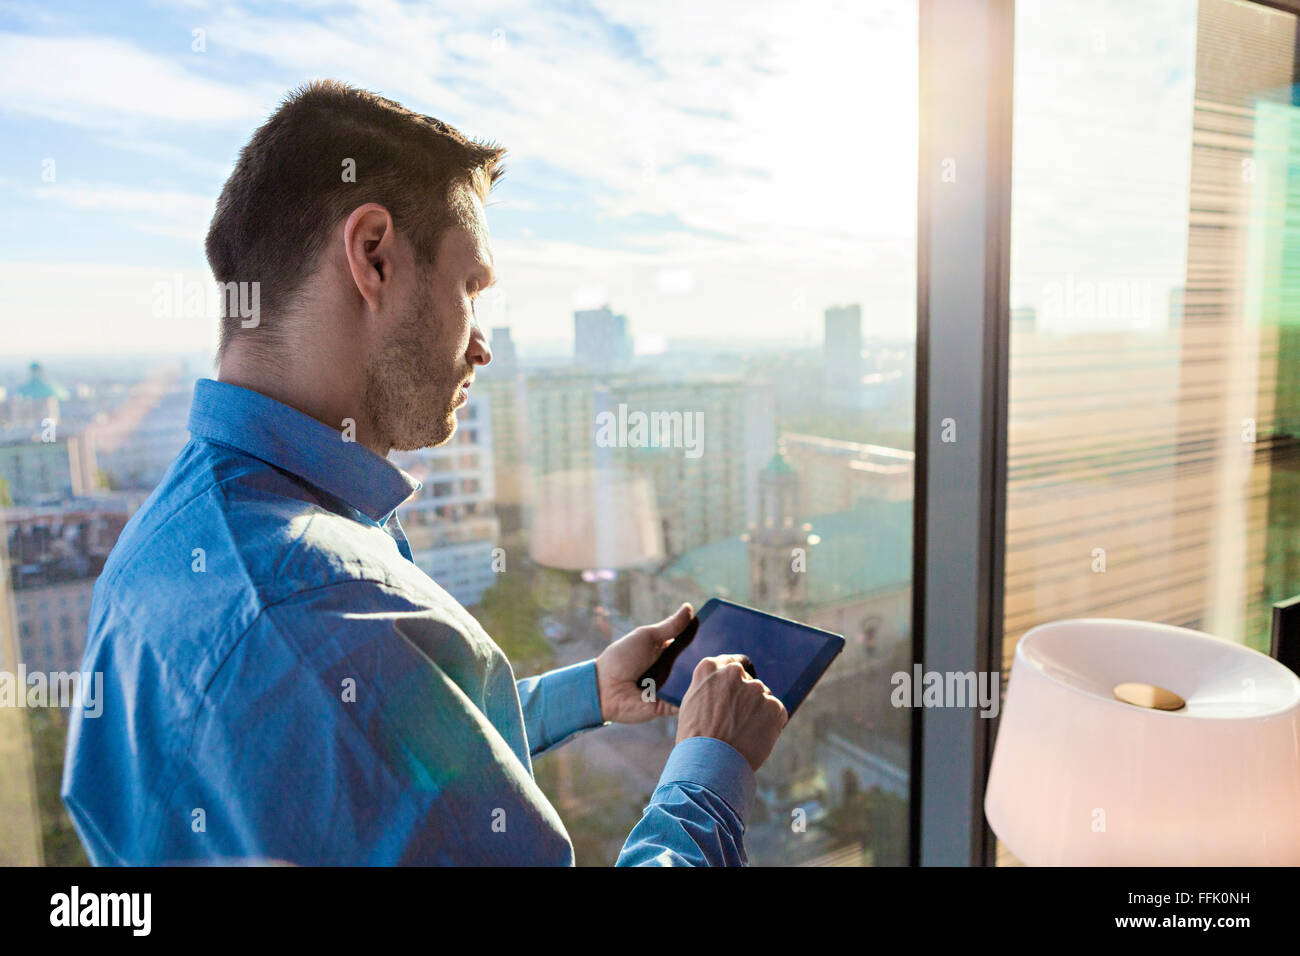 Businessman in apartment using digital tablet - Stock Image